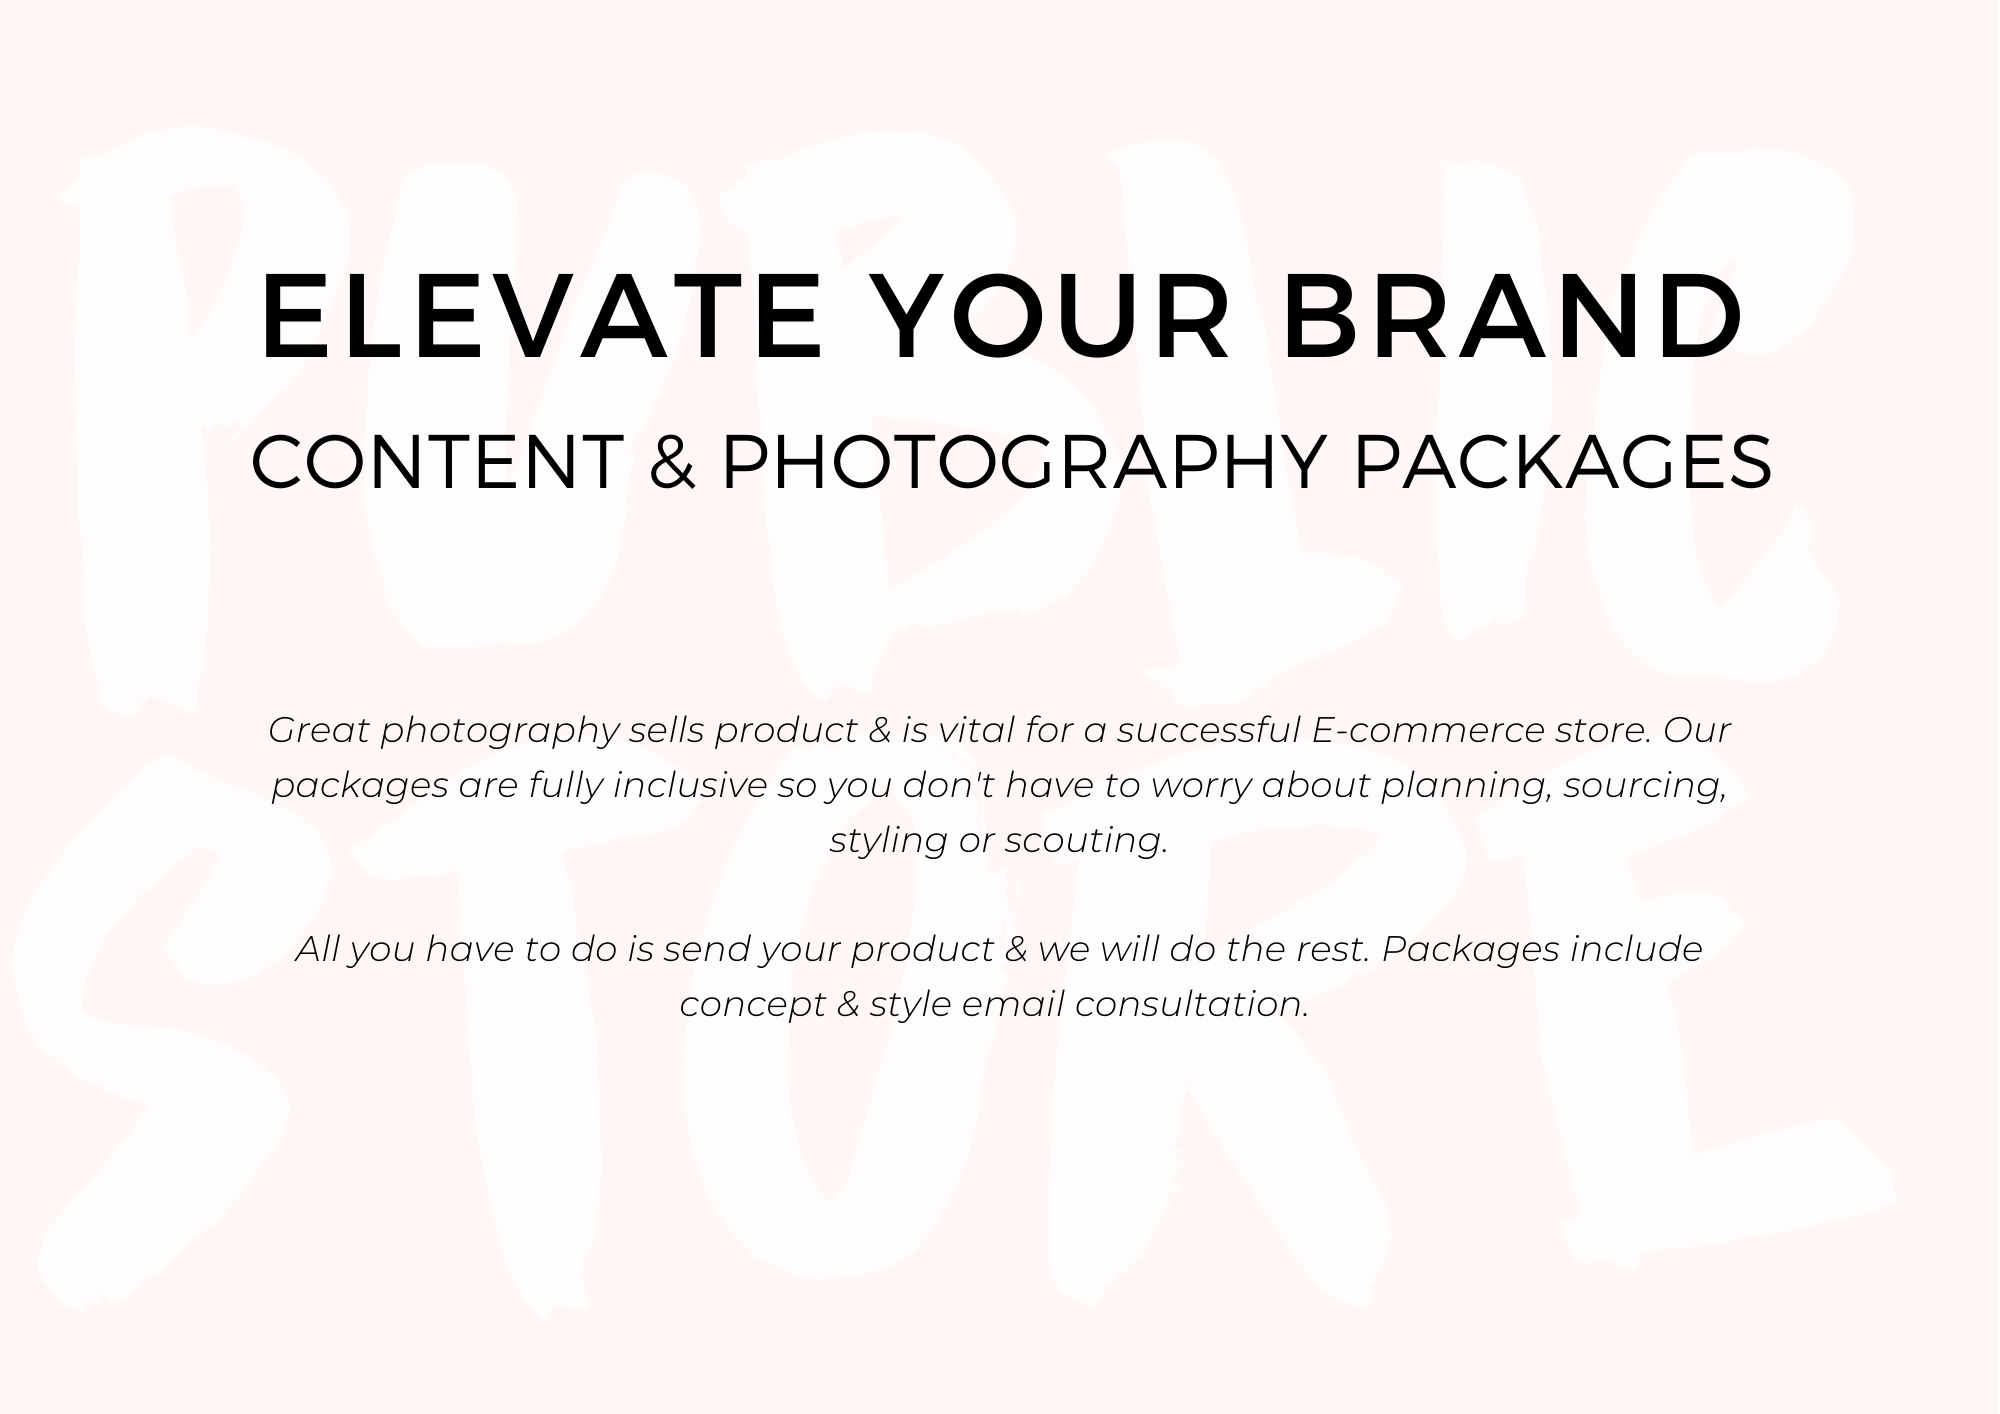 CONTENT & PHOTOGRAPHY PACKAGES Fashion Flatlay Model Photoshoot Social Media